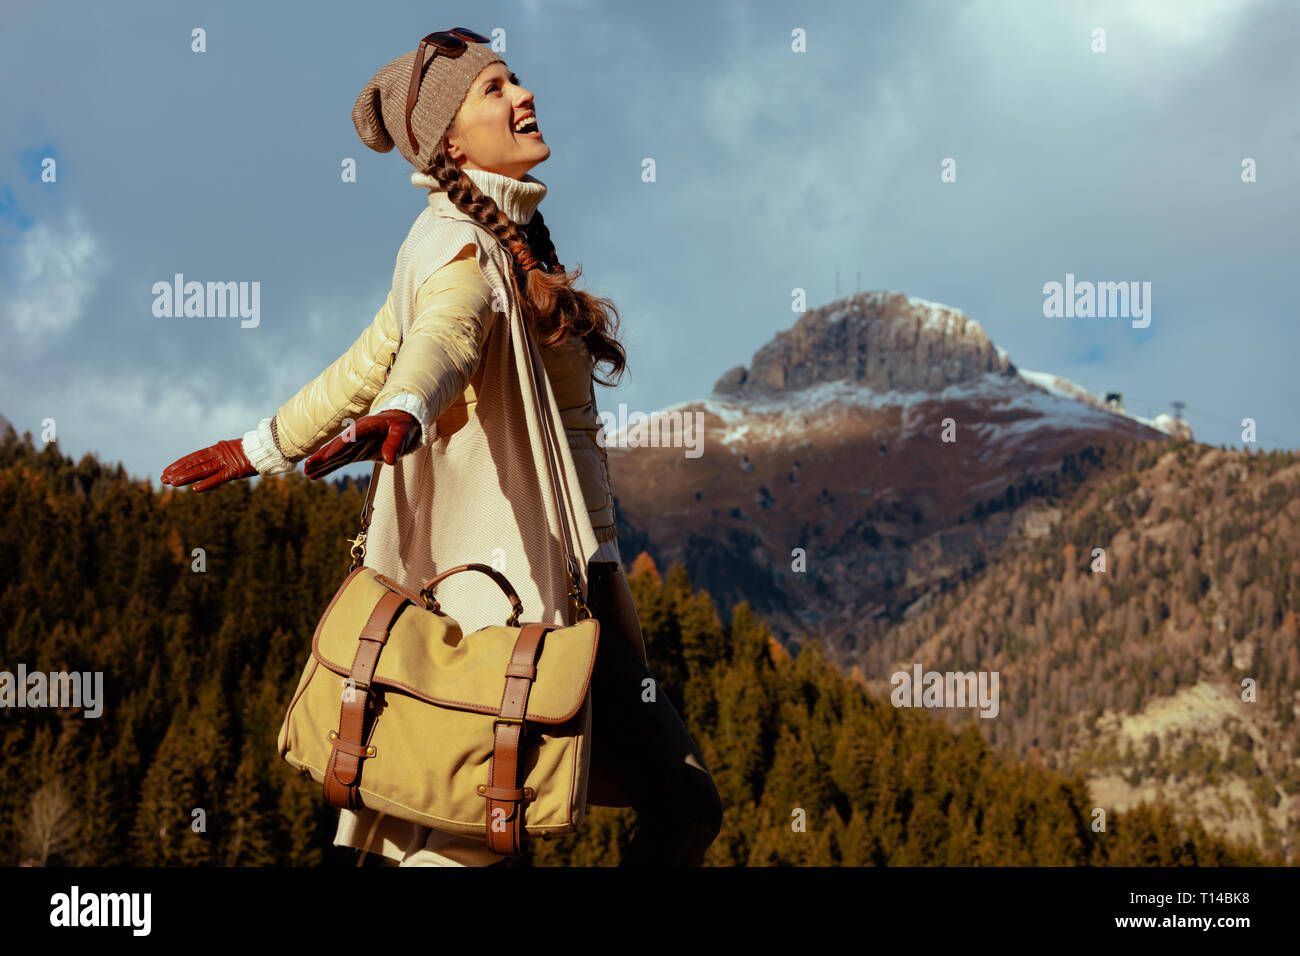 happy active traveller woman in hiking clothes with bag rejoicing against mountain scenery in South Tyrol, Italy. - Stock Image